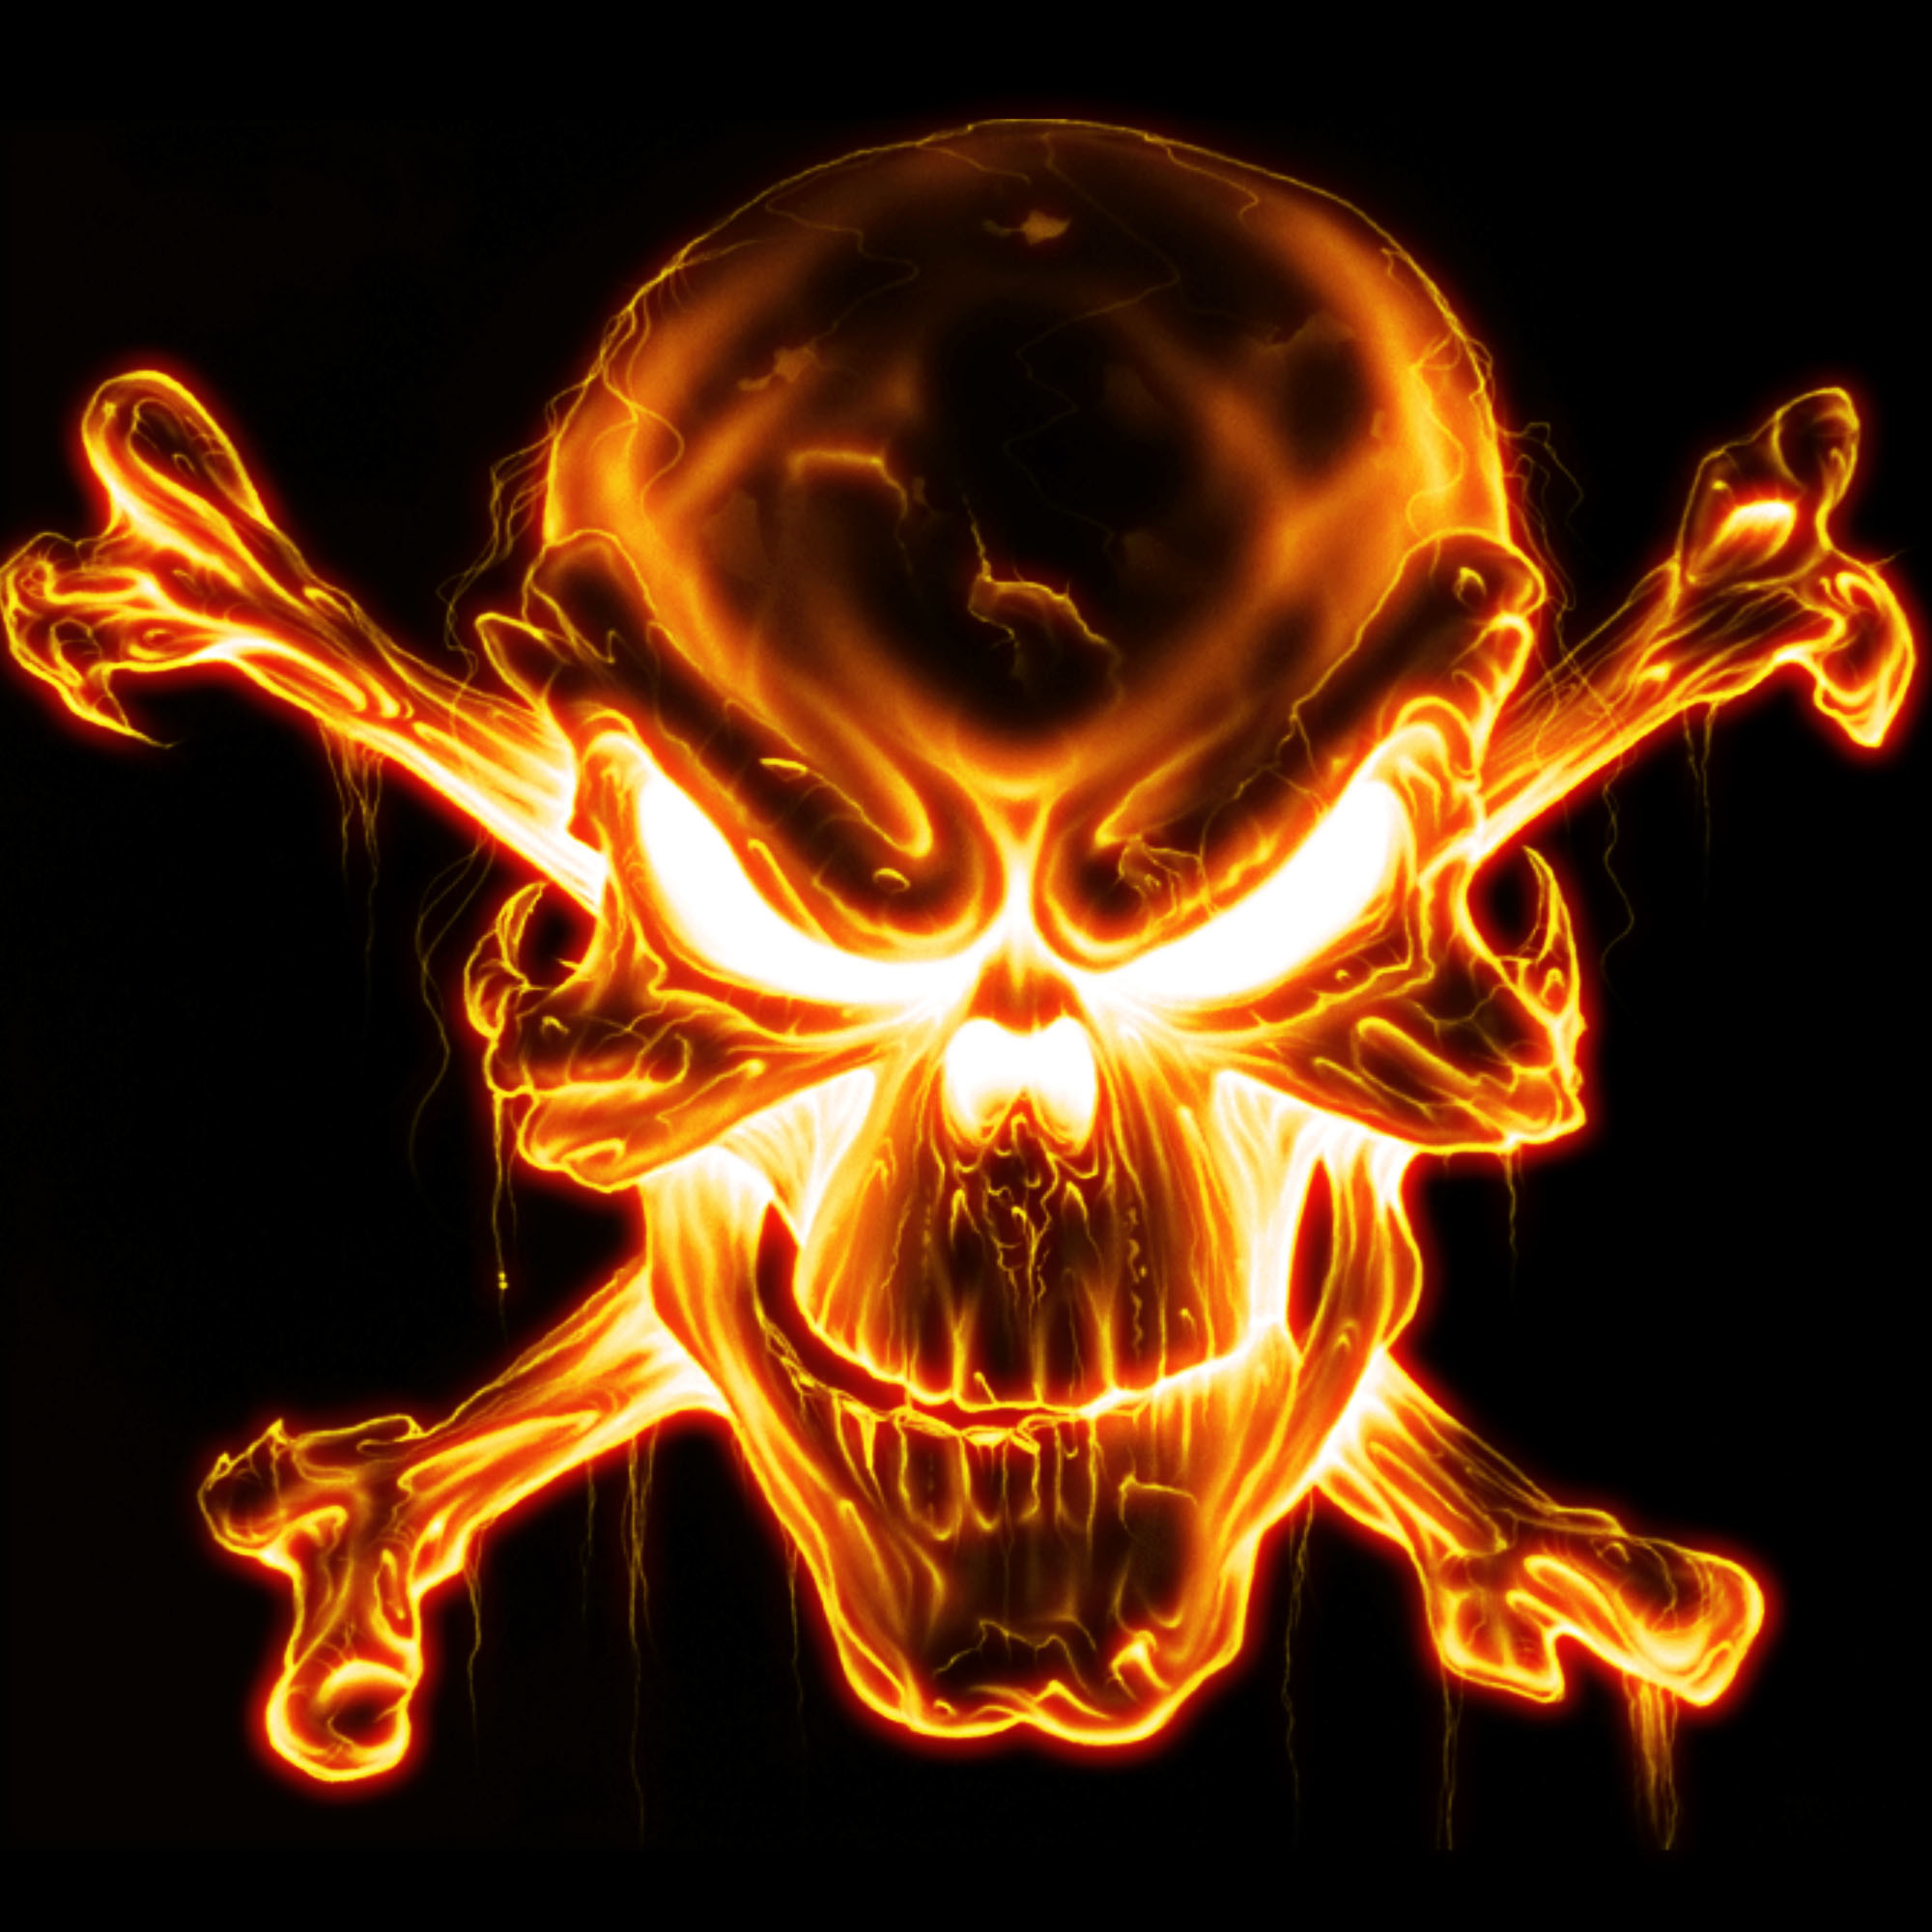 Blue Fire Skull Wallpaper (58+ Images